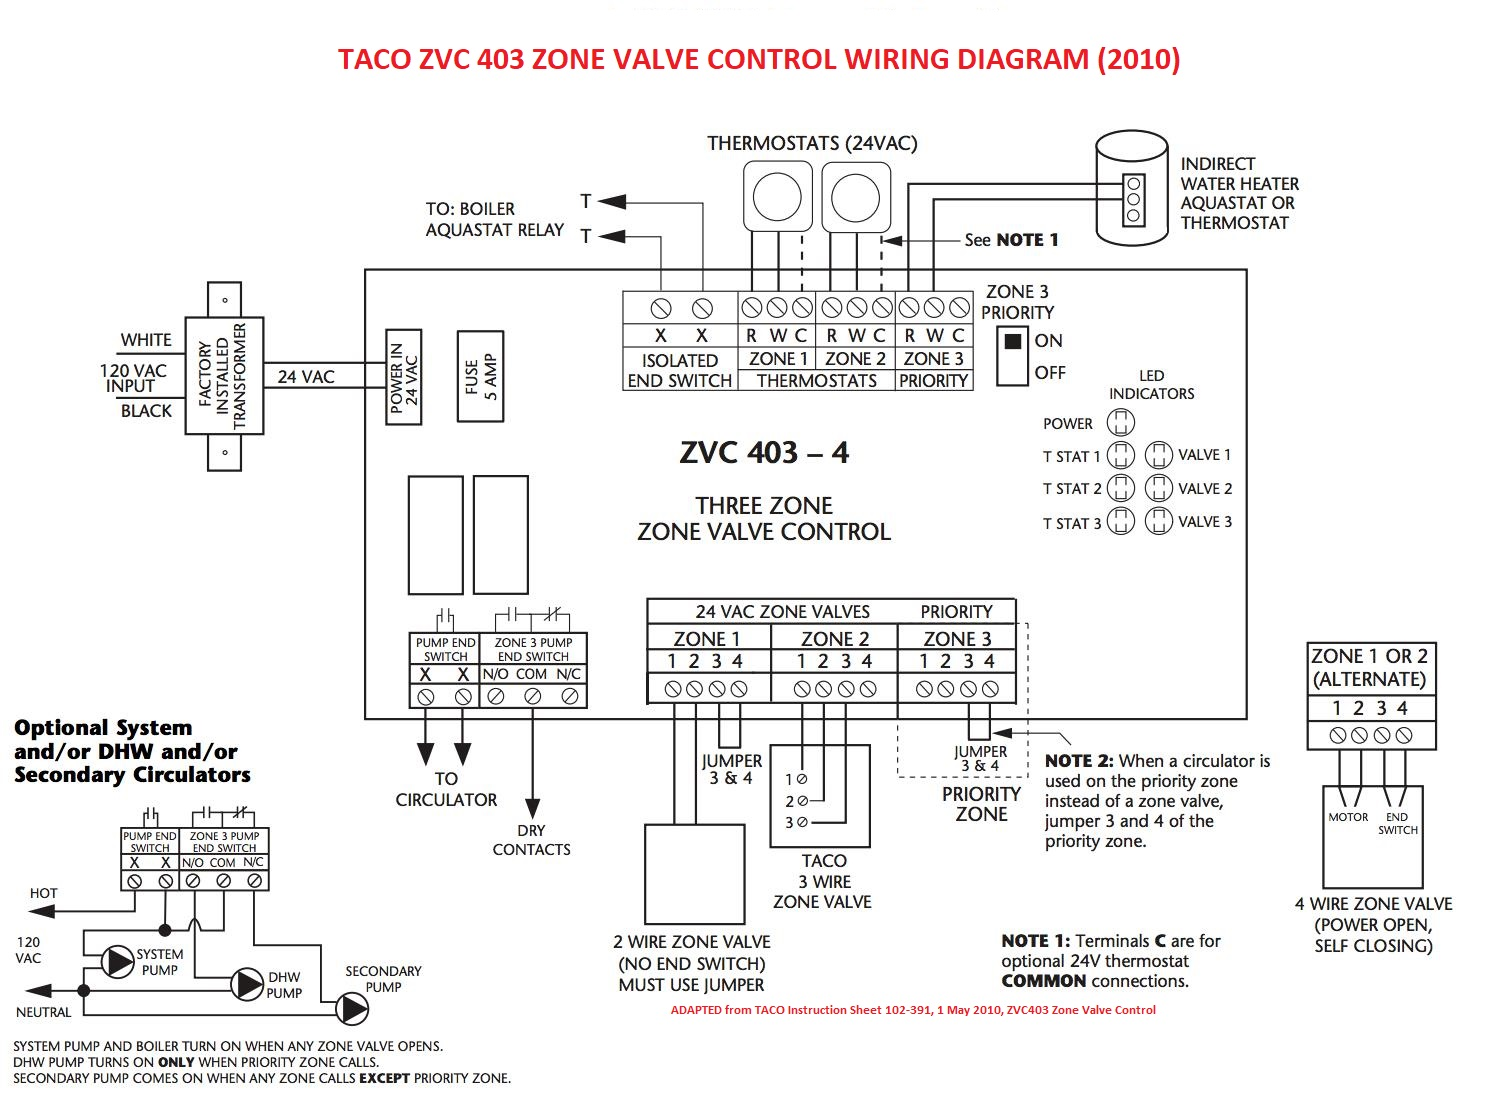 Honeywell Boiler Control Wiring Diagrams as well Millivolt Valve Operation as well Zone Valve together with Zone Valve Wiring besides Wiring Diagrams Spas Pools Spa Motor Parts Diagram At Gfci On. on taco zone valve diagram